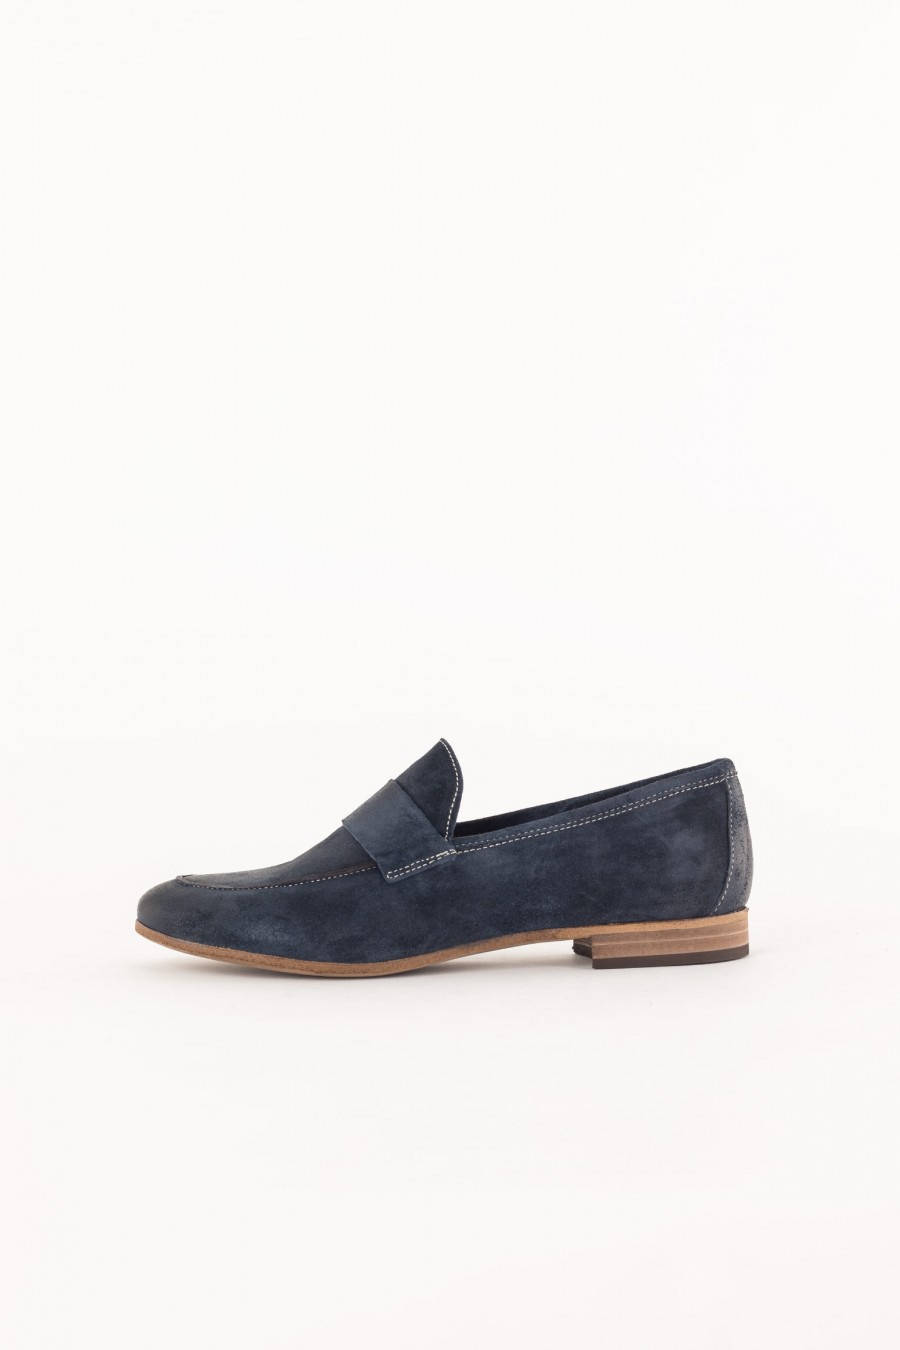 blue loafer with band